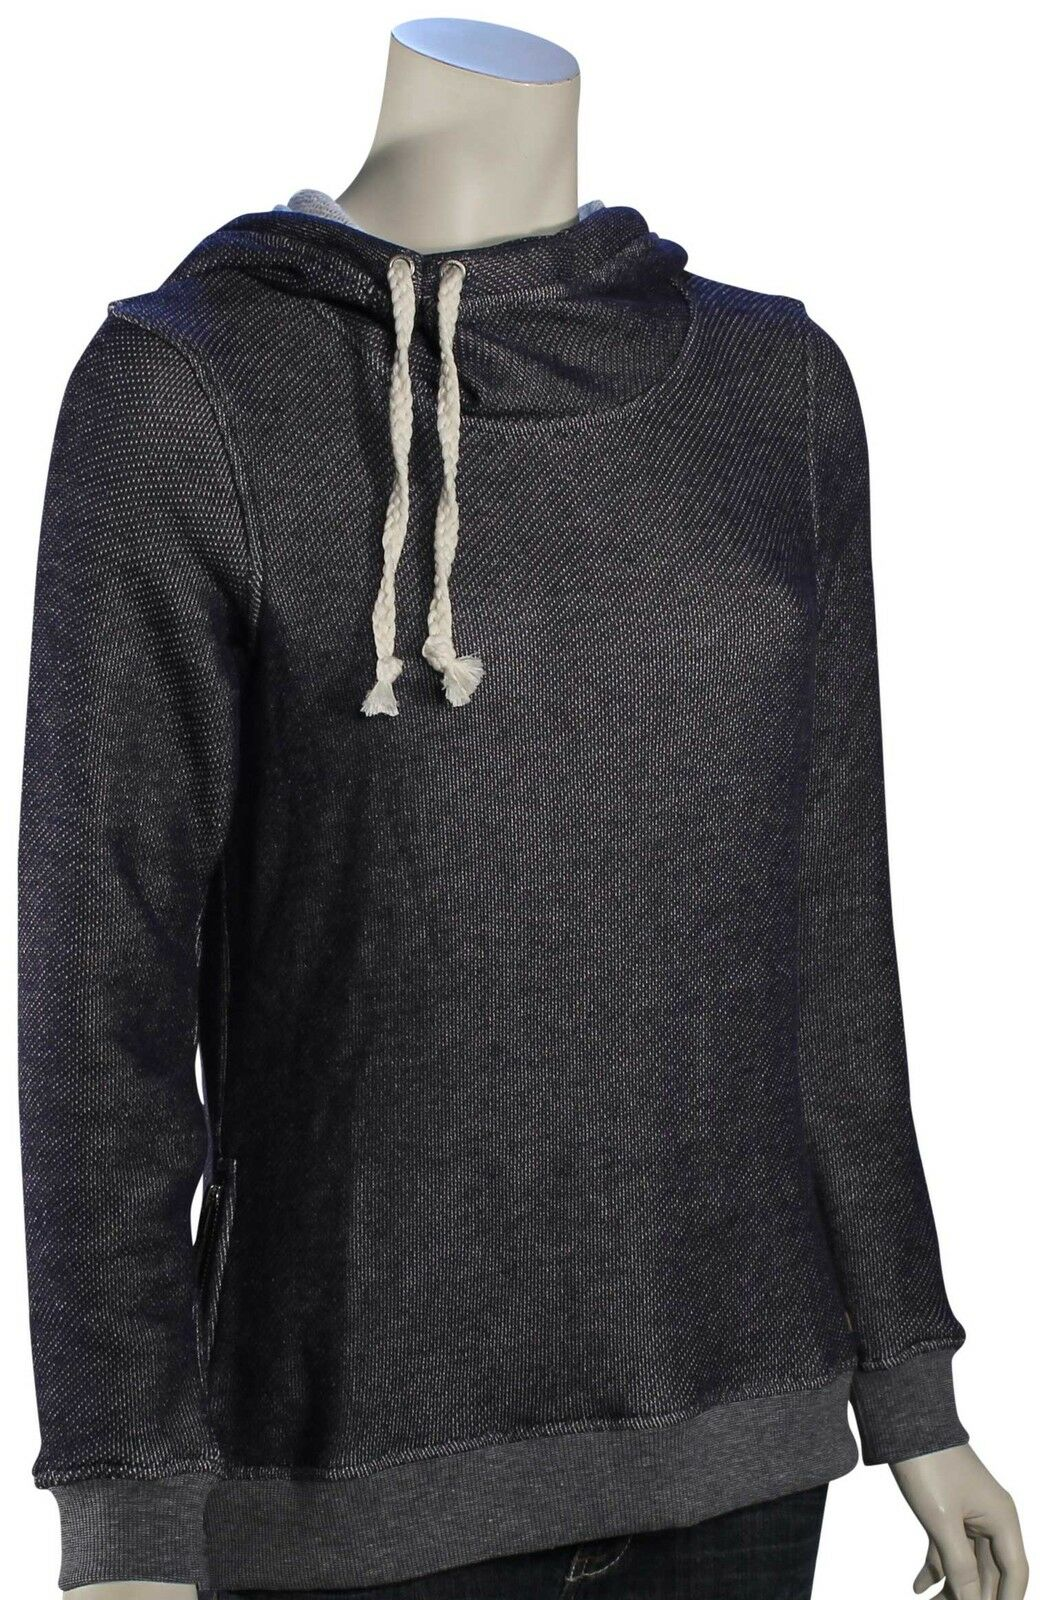 Roxy Sharing Song Solid Hoody - Eclipse - New